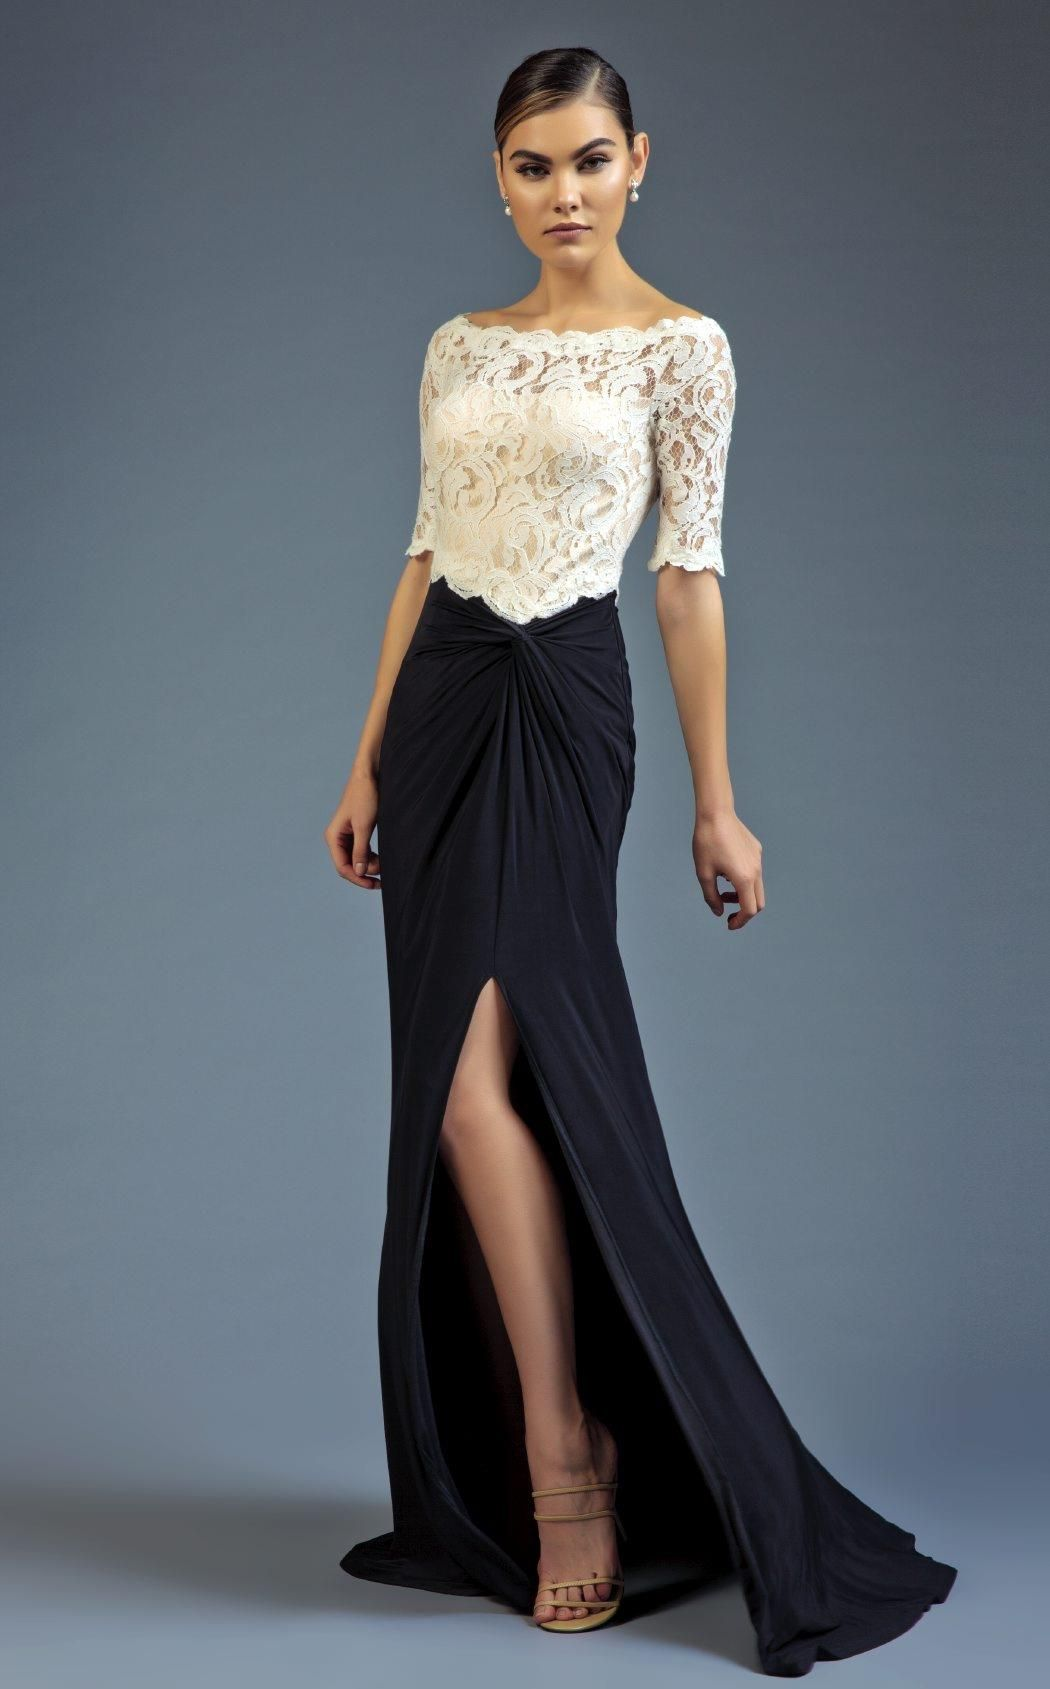 268b9a39470 Look wonderful at your next black tie event in this elegant evening dress  from Mac Duggal 80505D. The scalloped bateau neckline bodice has sheer  elbow ...